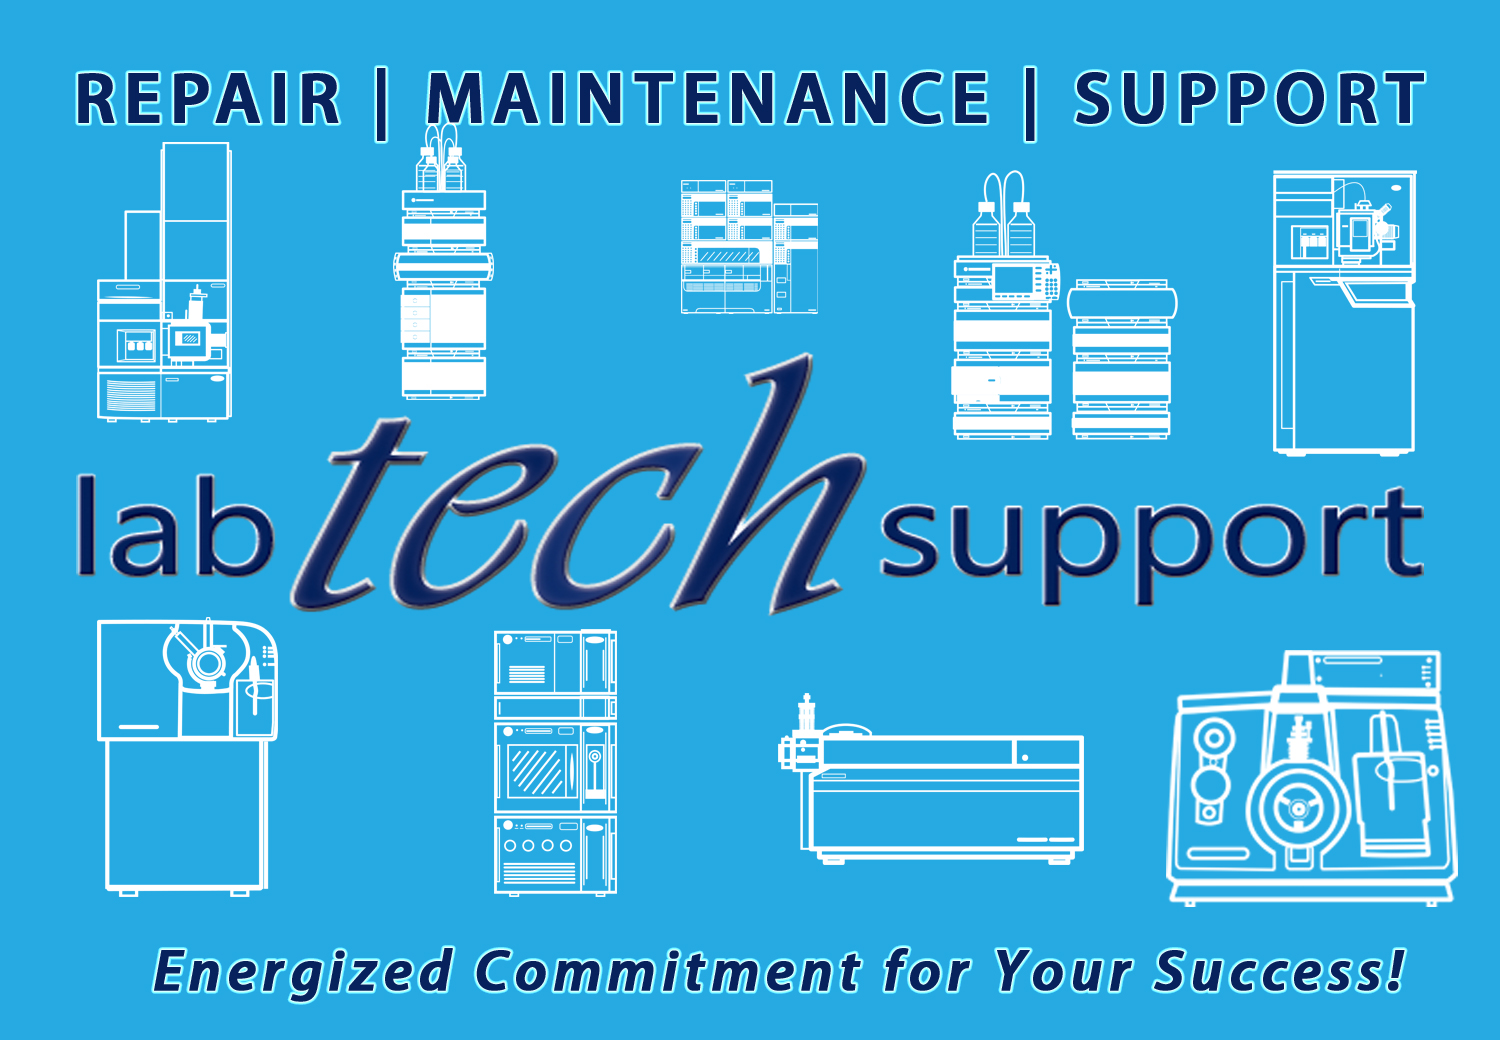 LabTechSupport---Service-Company